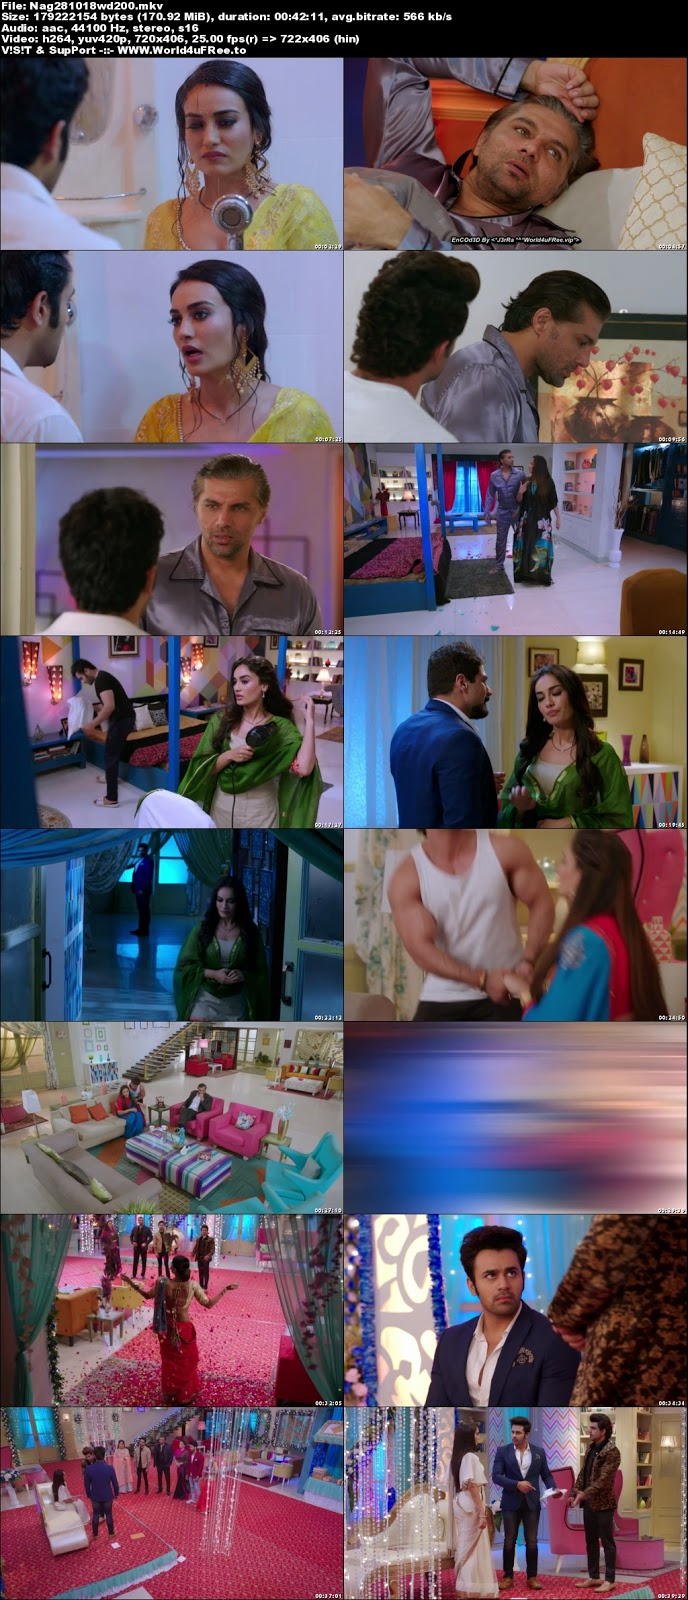 Naagin Season 3  2018 Episode 44 HDTV 480p 200mb world4ufree.vip tv show Naagin Season 3 hindi tv show Naagin Season 3  Colours  tv show compressed small size free download or watch online at world4ufree.vip